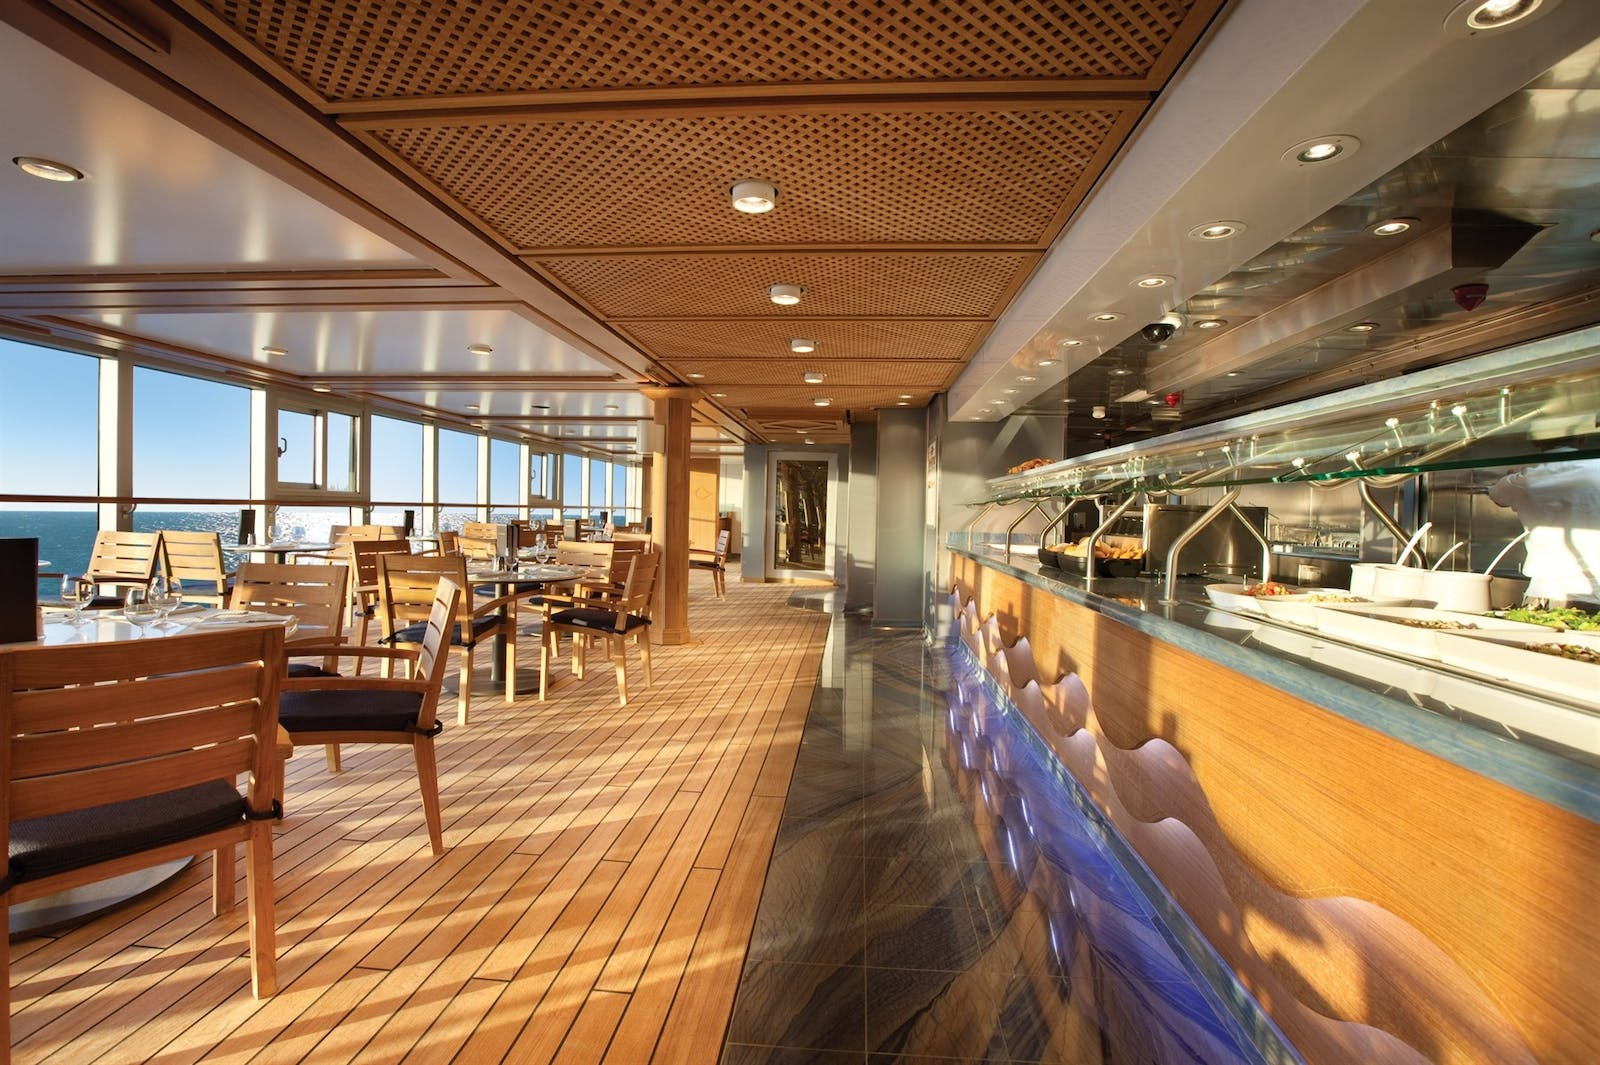 Waves Grill on the Oceania Riveria